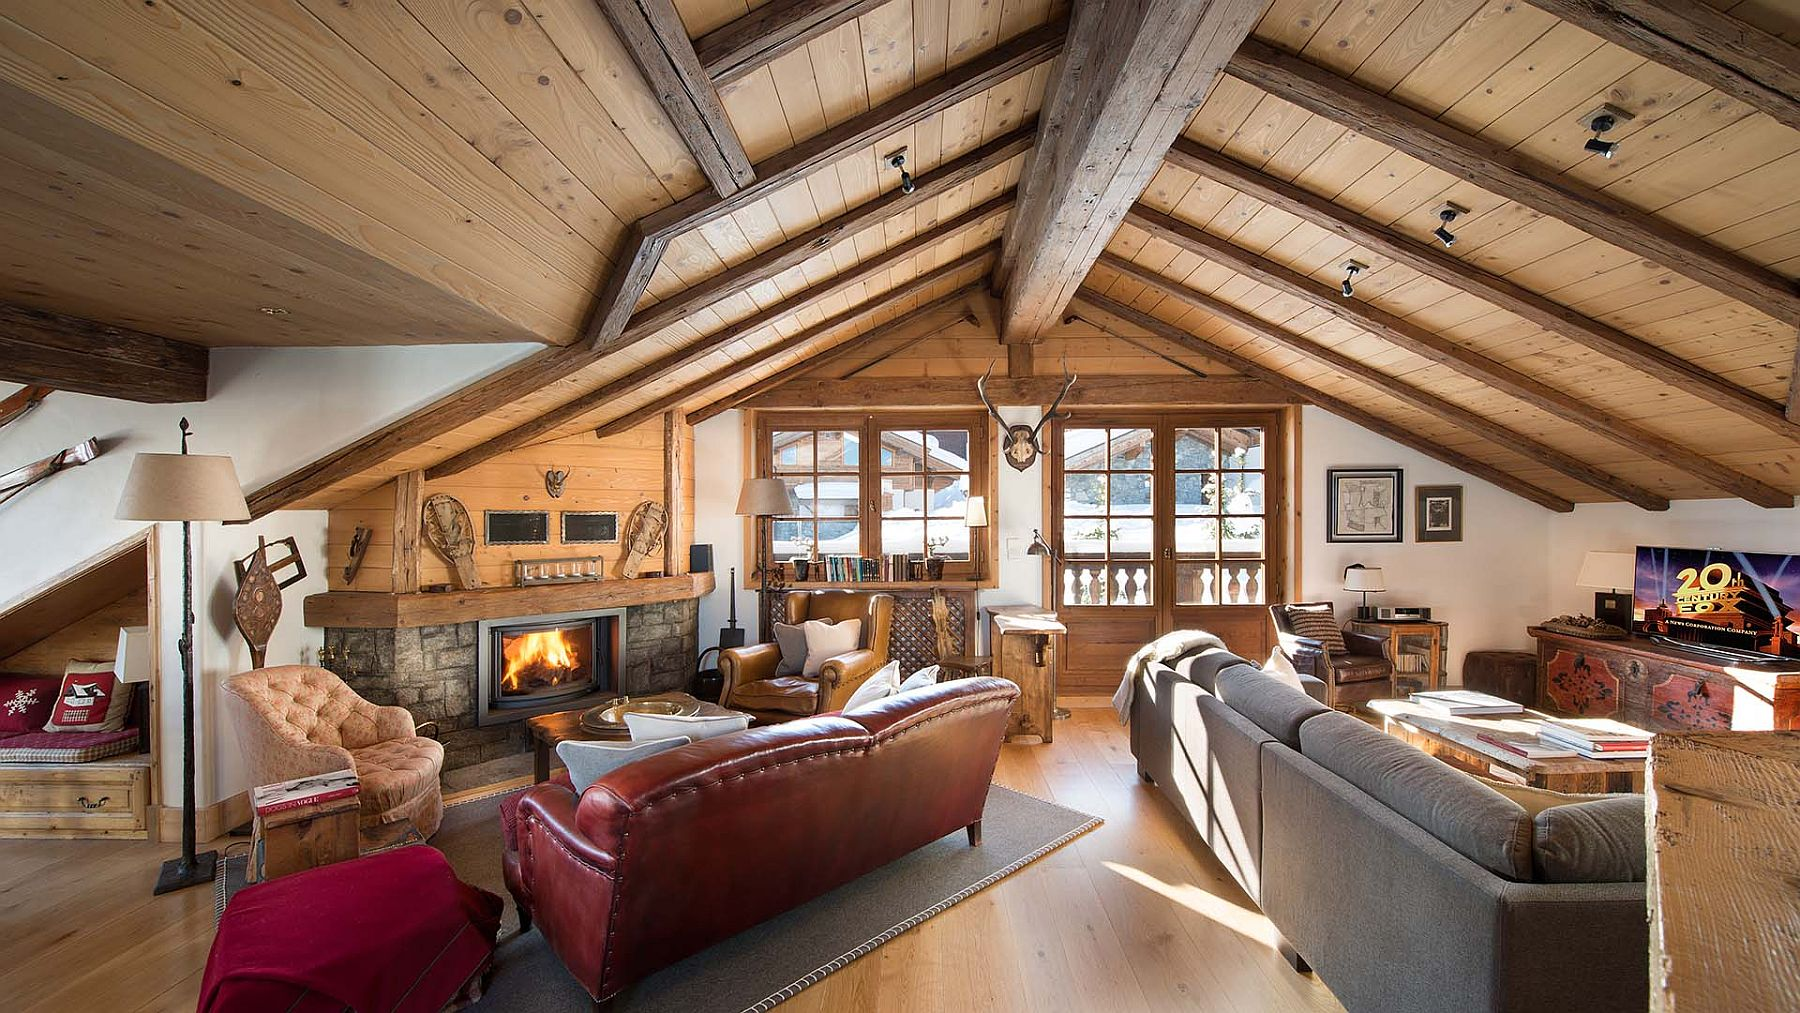 Classic wooden interior of the luxury French chalet with modern upgrade